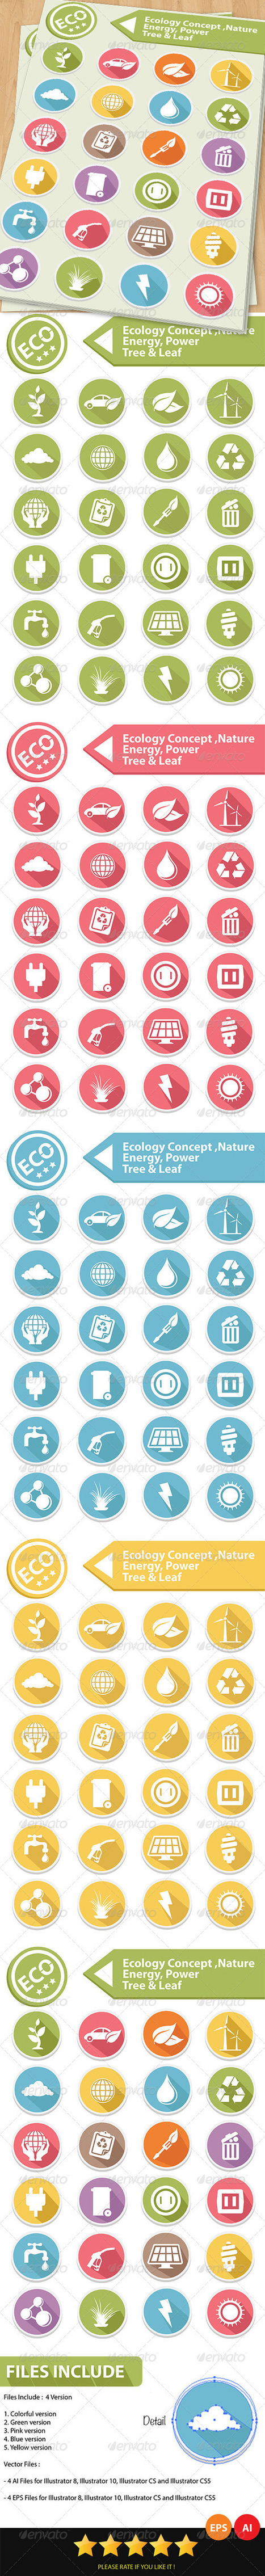 Ecology Icons (Icons) | Biology - Geology - Ecology | Scoop.it